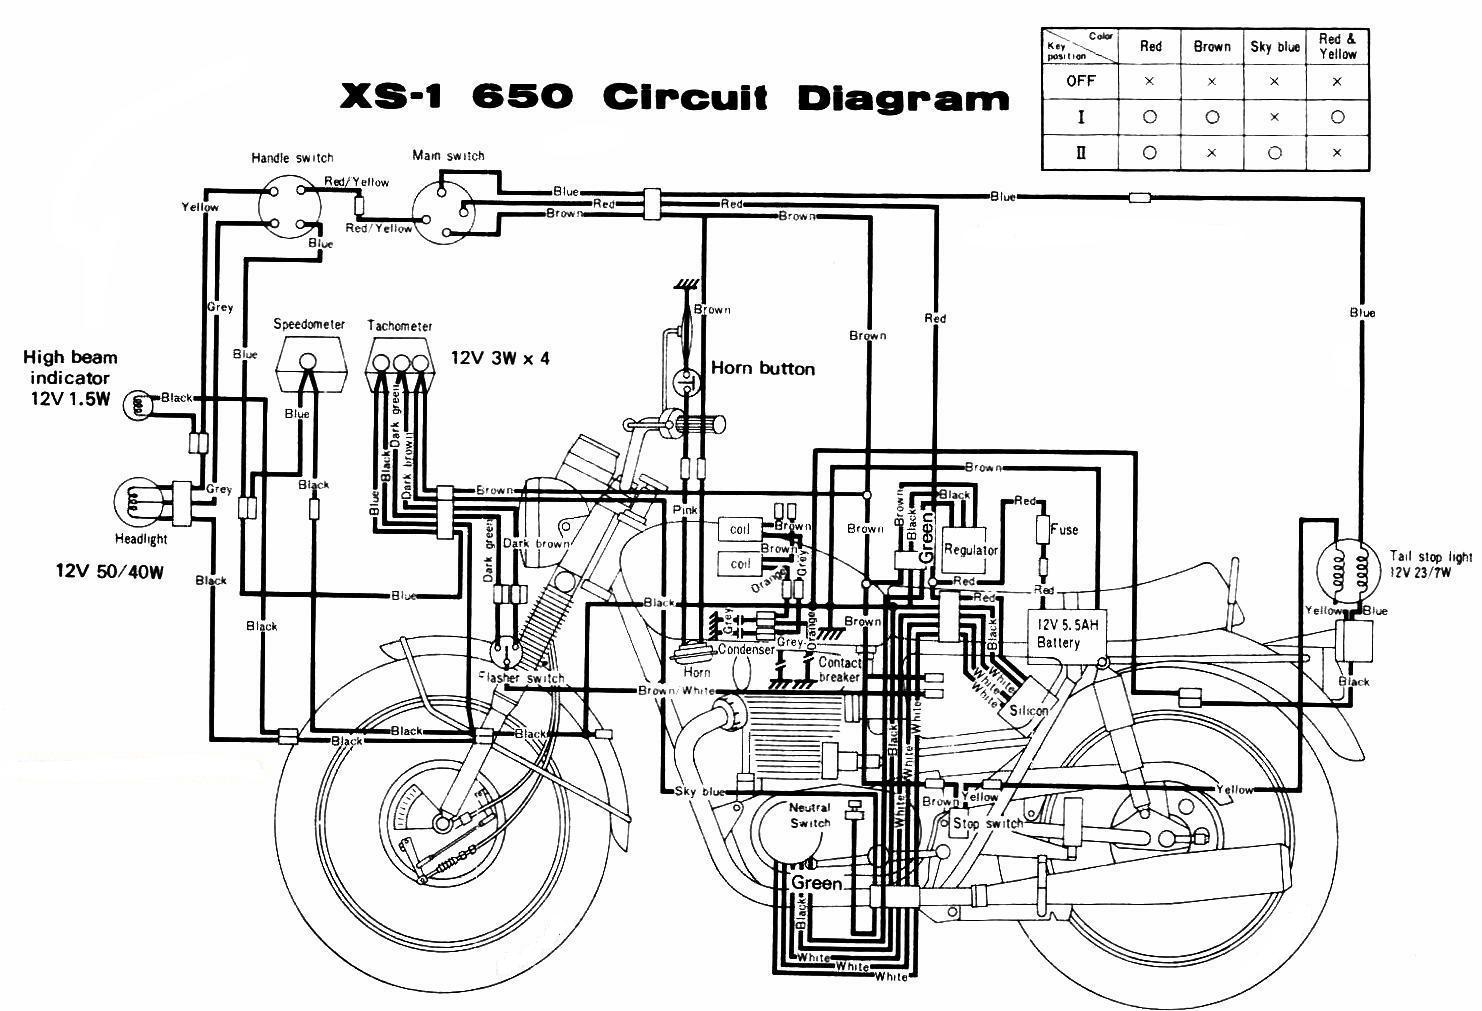 hight resolution of 1970 xs1 page 1 wiring diagrams 1970 xs1 page 1 4 stroke basic motorcycle